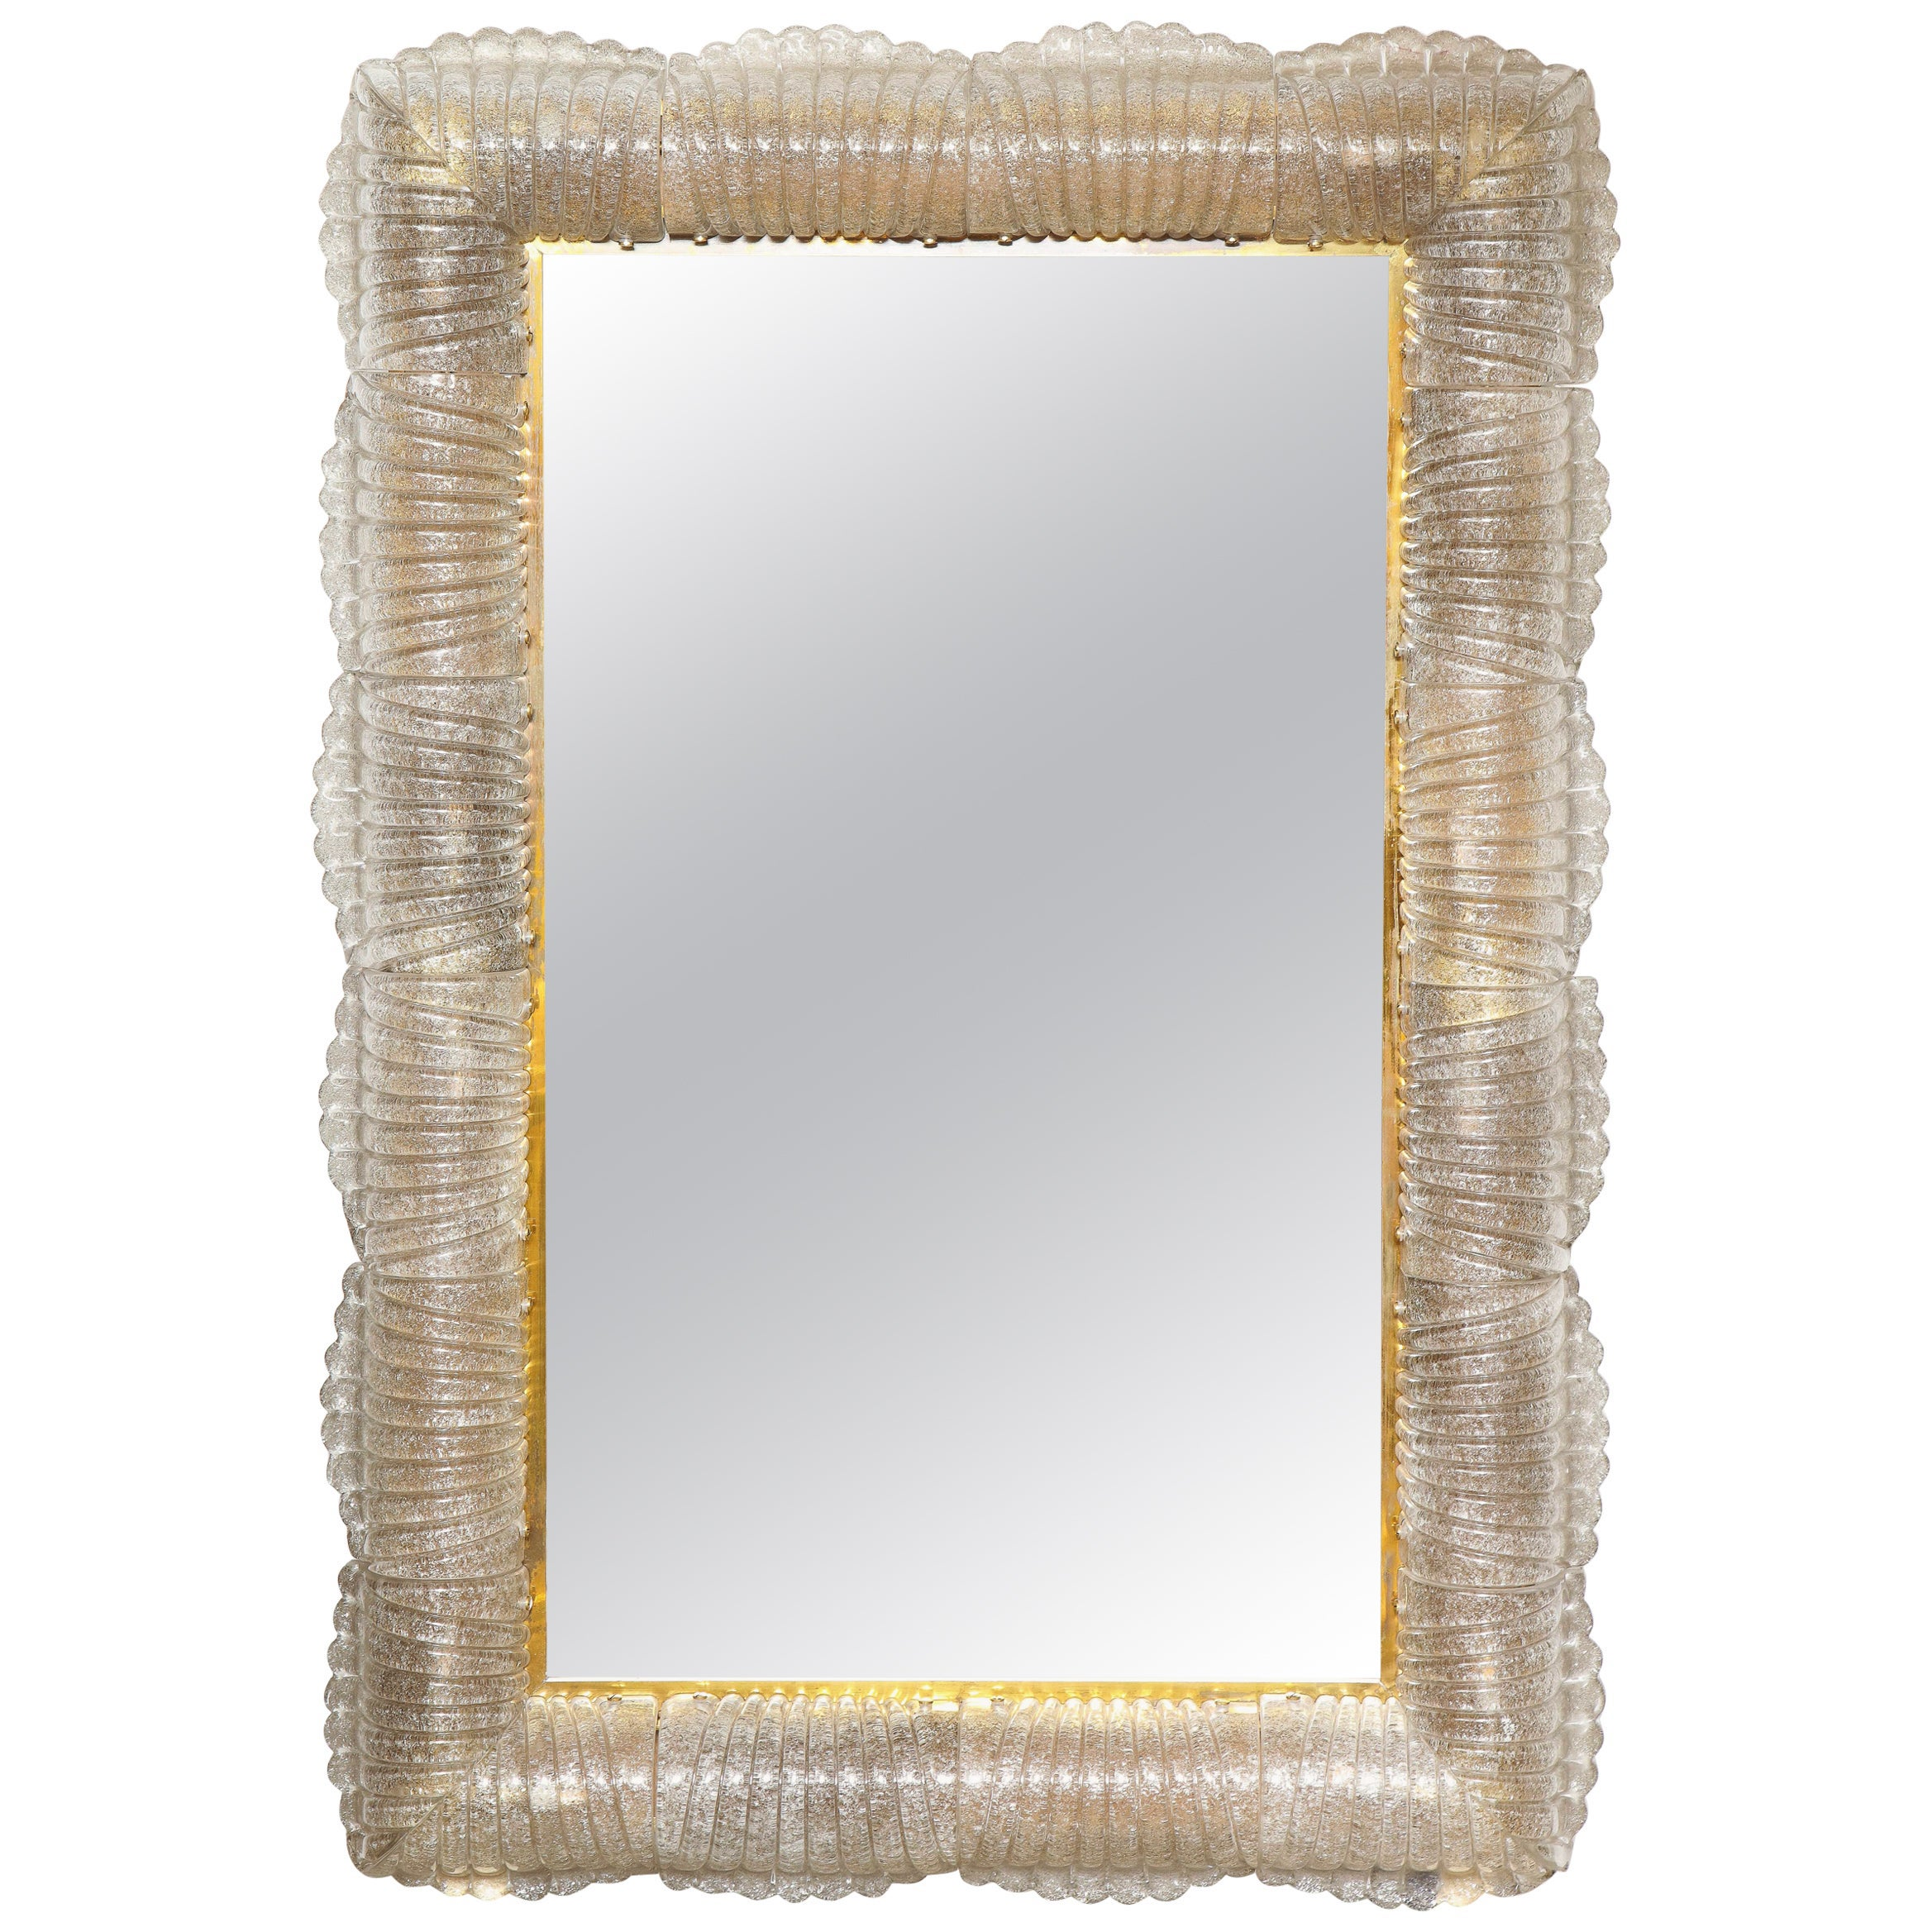 Textured Light Smoke Taupe Murano Glass and Brass Mirrors, Lighted, Italy